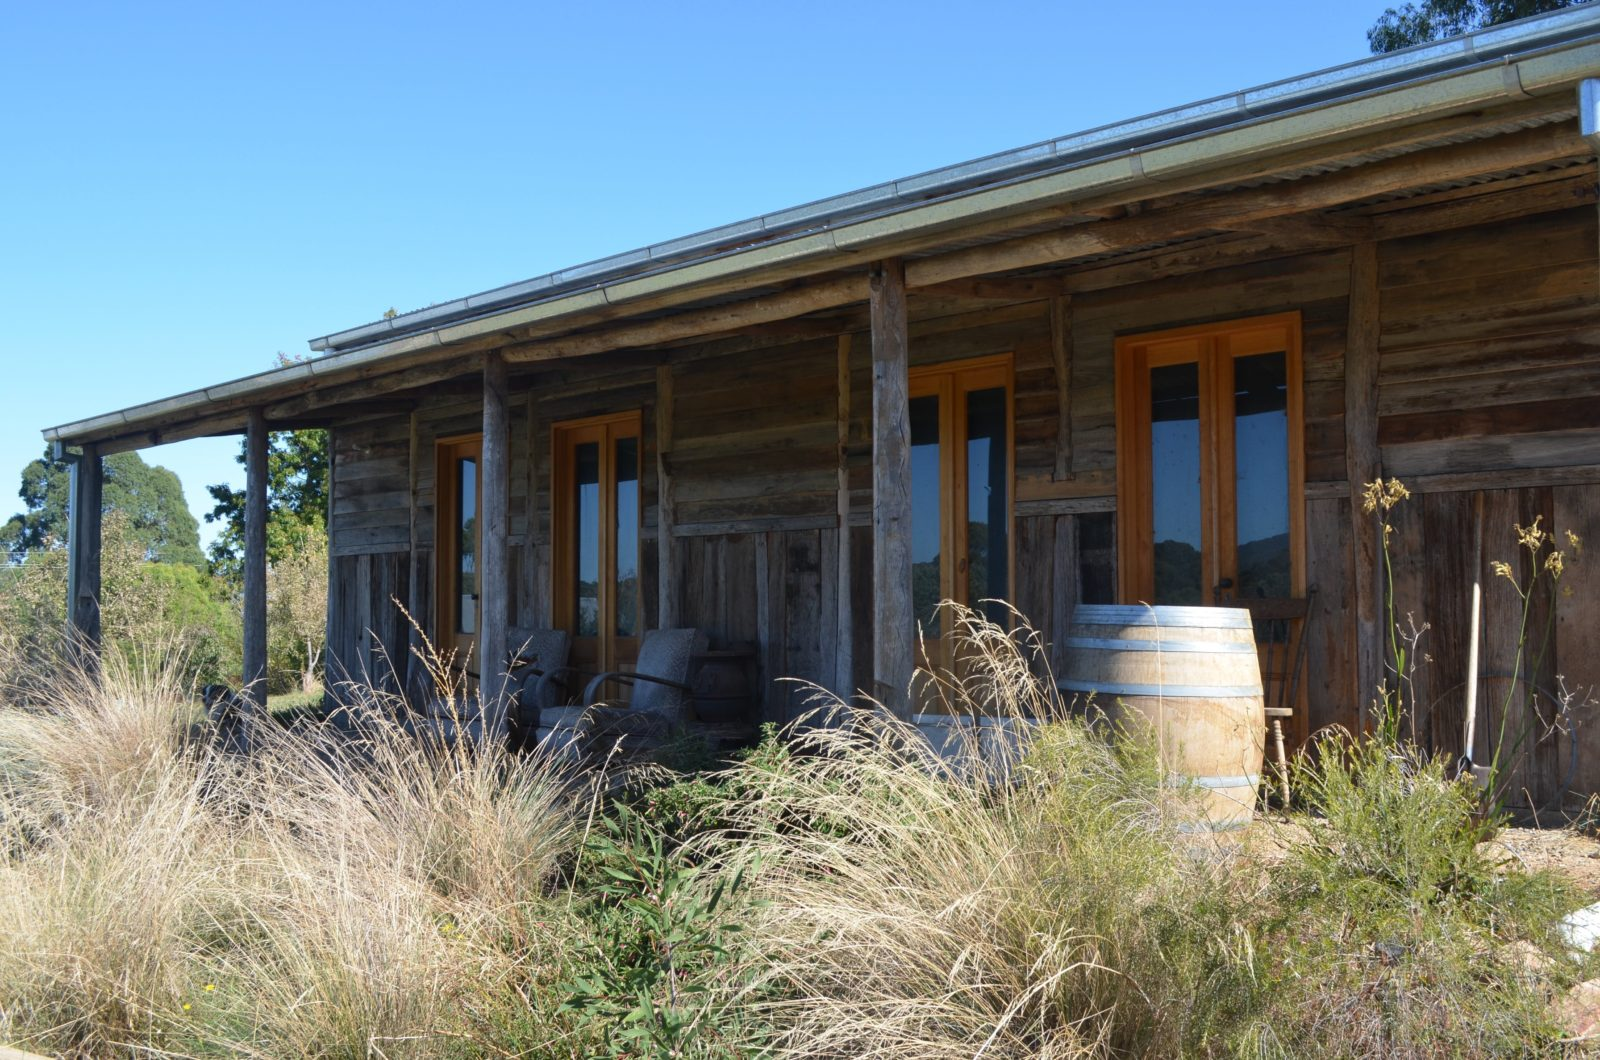 A view of the front of the Traviarti Winery with a barrel under the verandah.